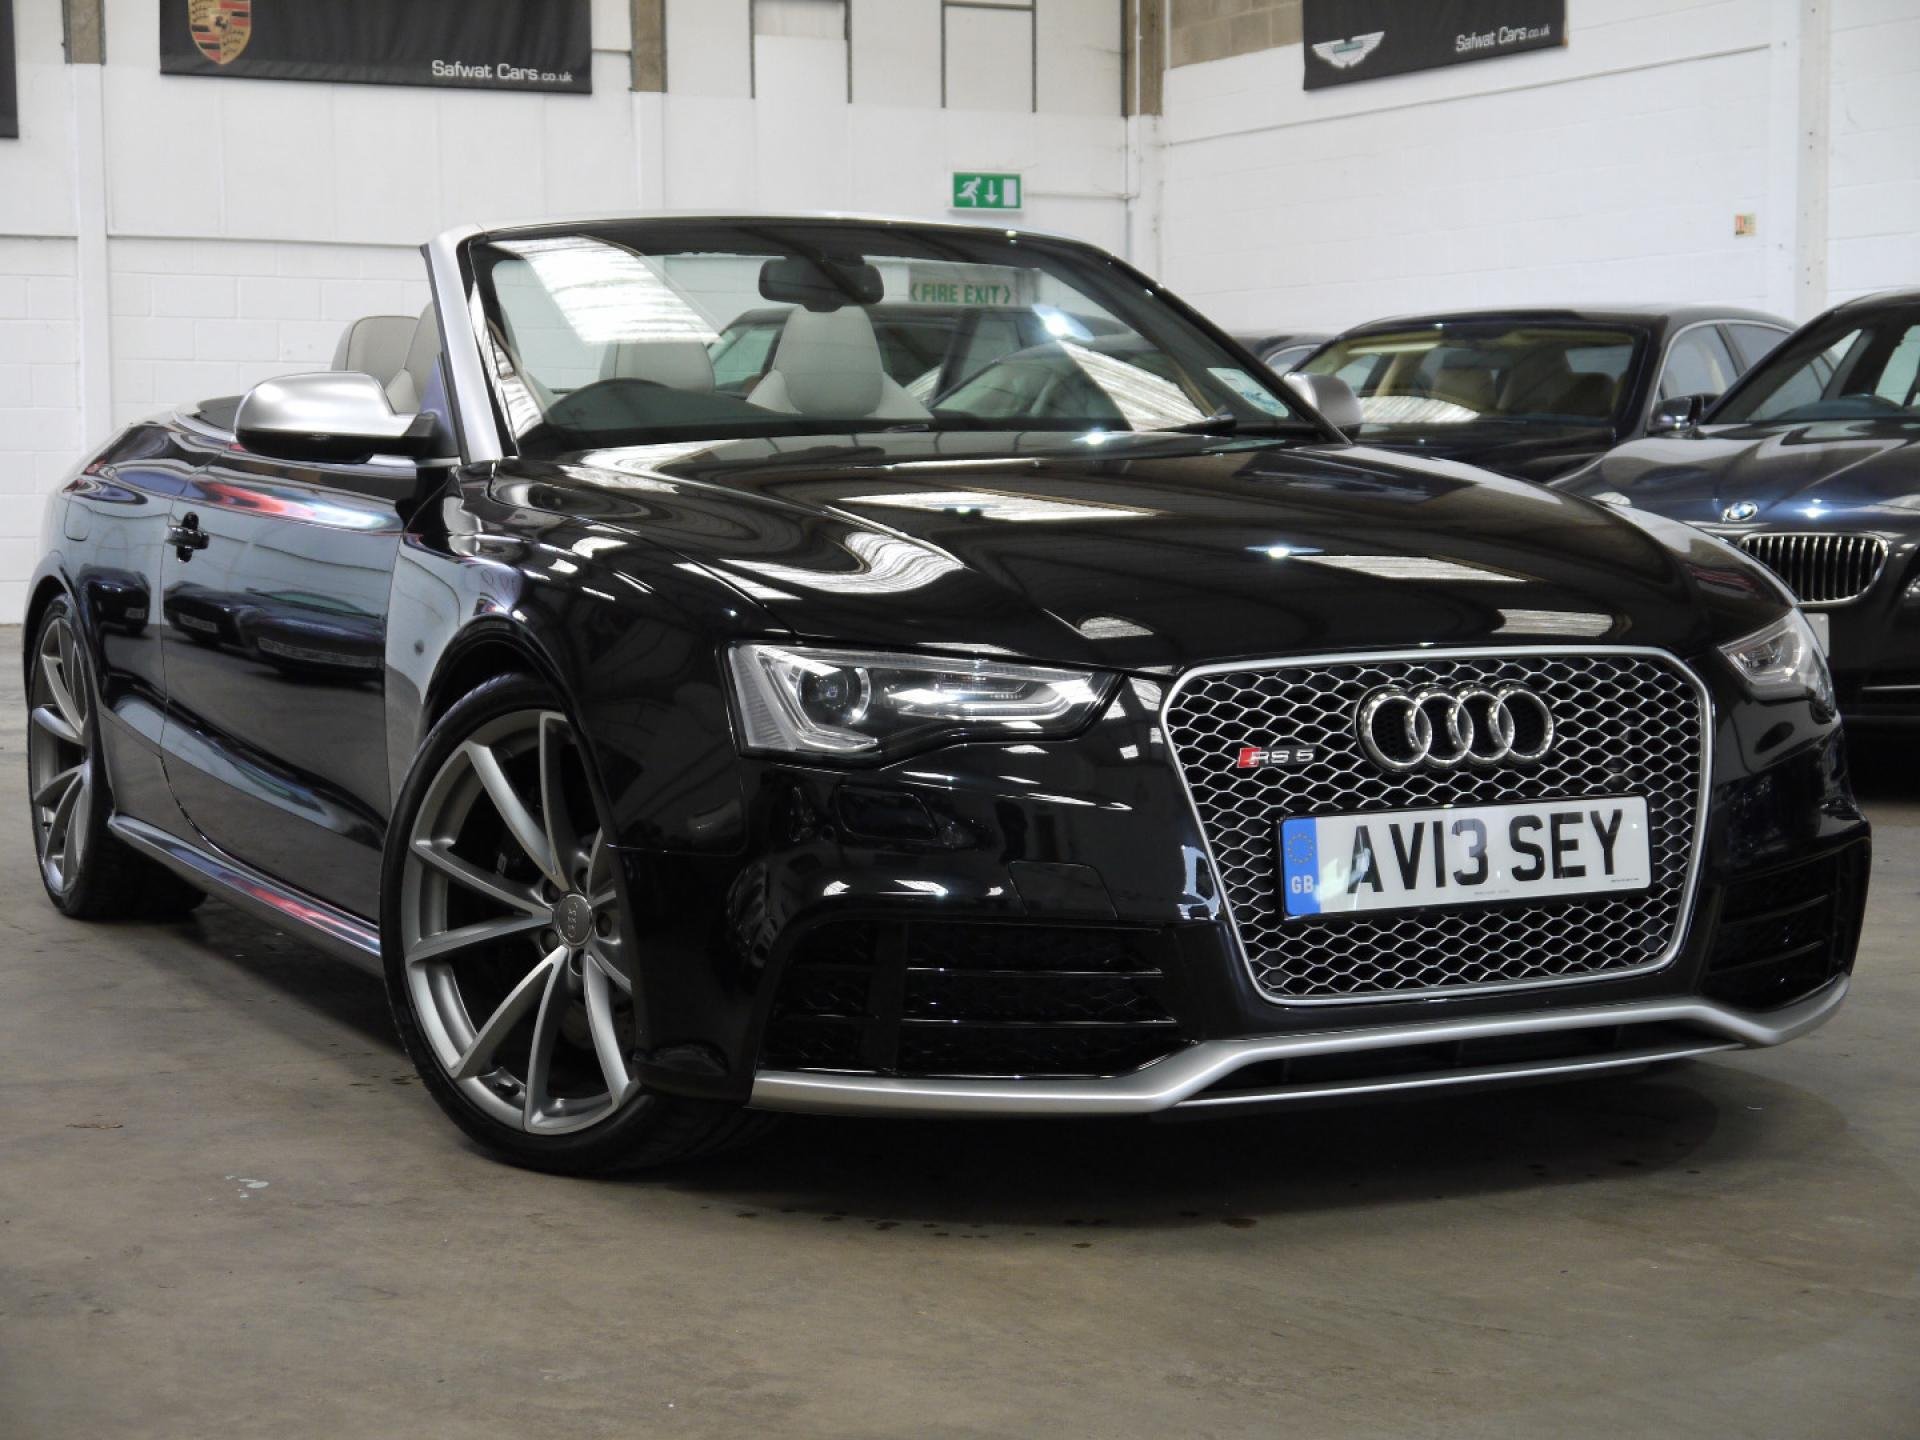 vehicle cabriolet detailing convertible detailers north audi finer for sale specialist car stunning west ltd